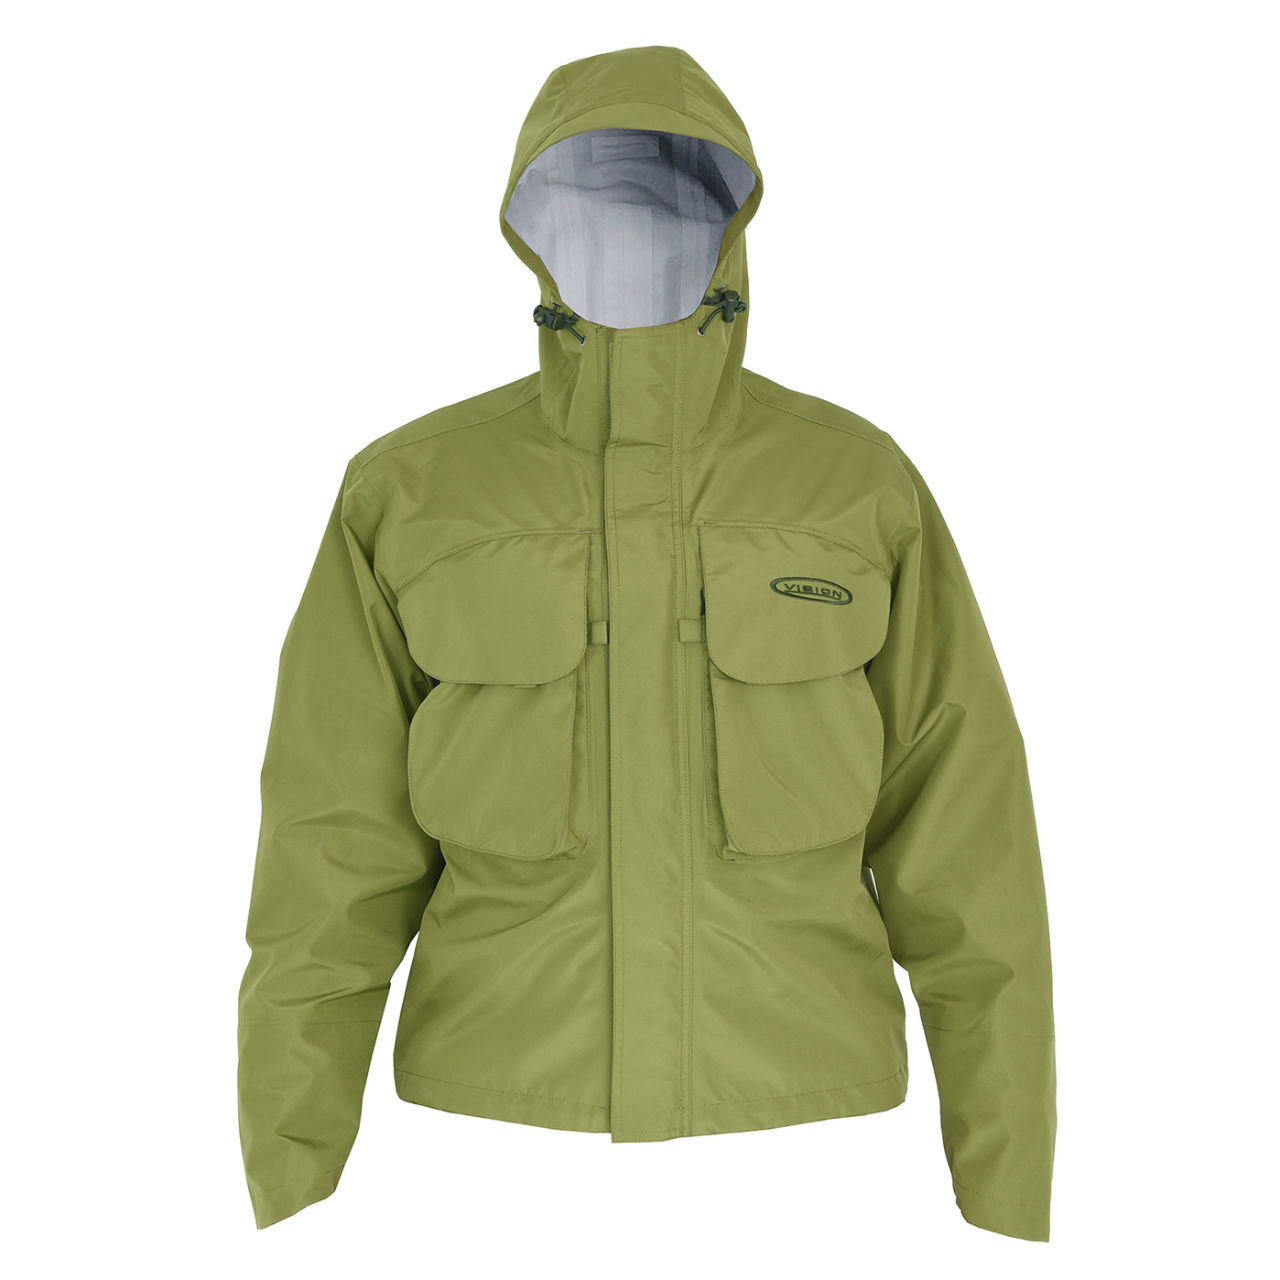 e7de7b48fc0b5 Vision Vector Wading Jacket | Mid Antrim Angling Centre